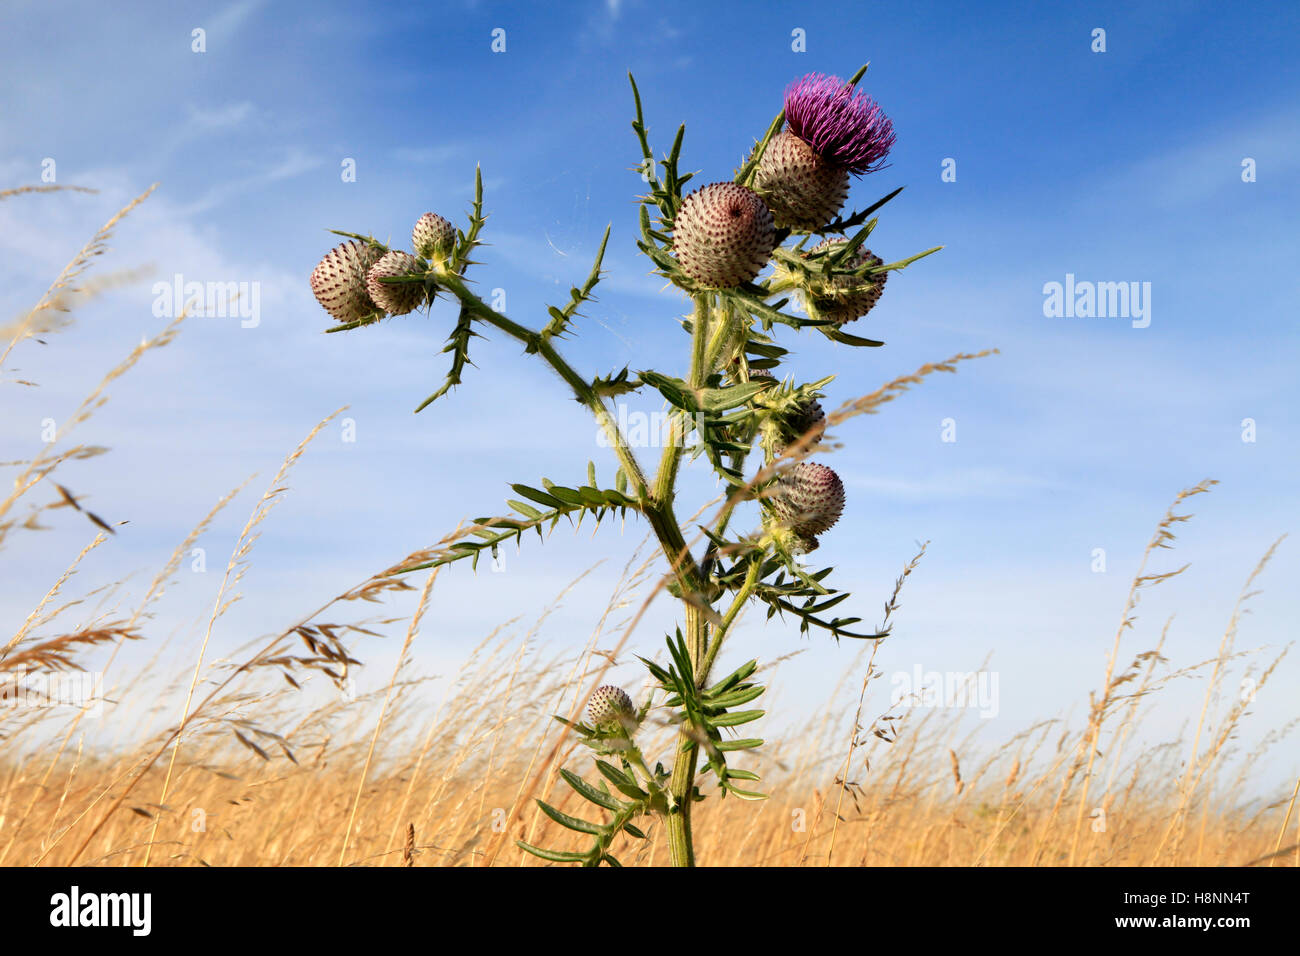 A common thistle growing on chalk downland in Wiltshire, England. - Stock Image